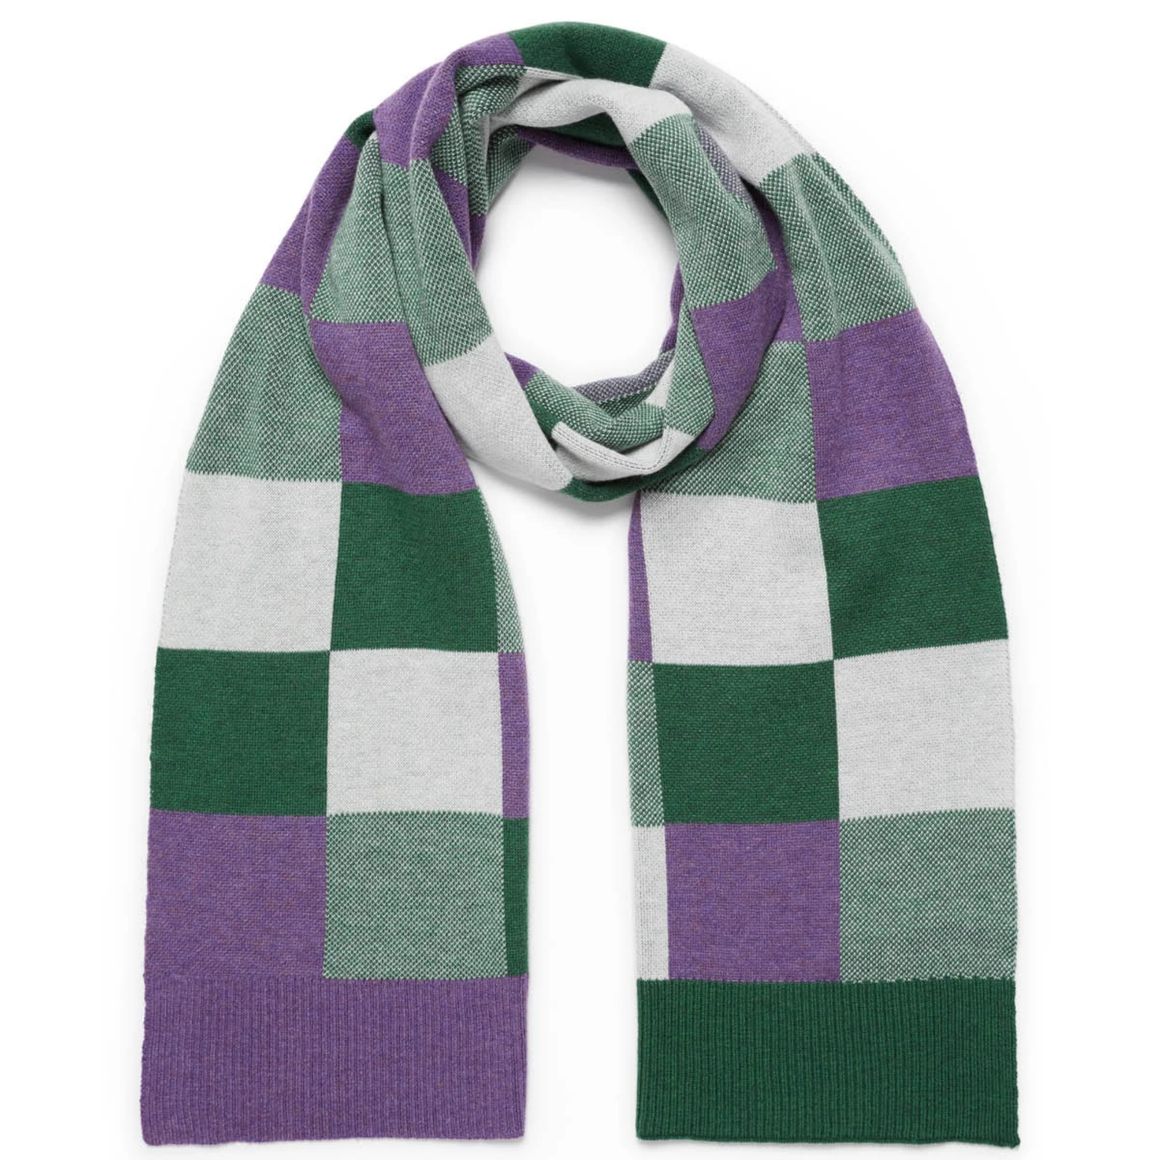 CHECKERS SCARF - BASIL CHECK